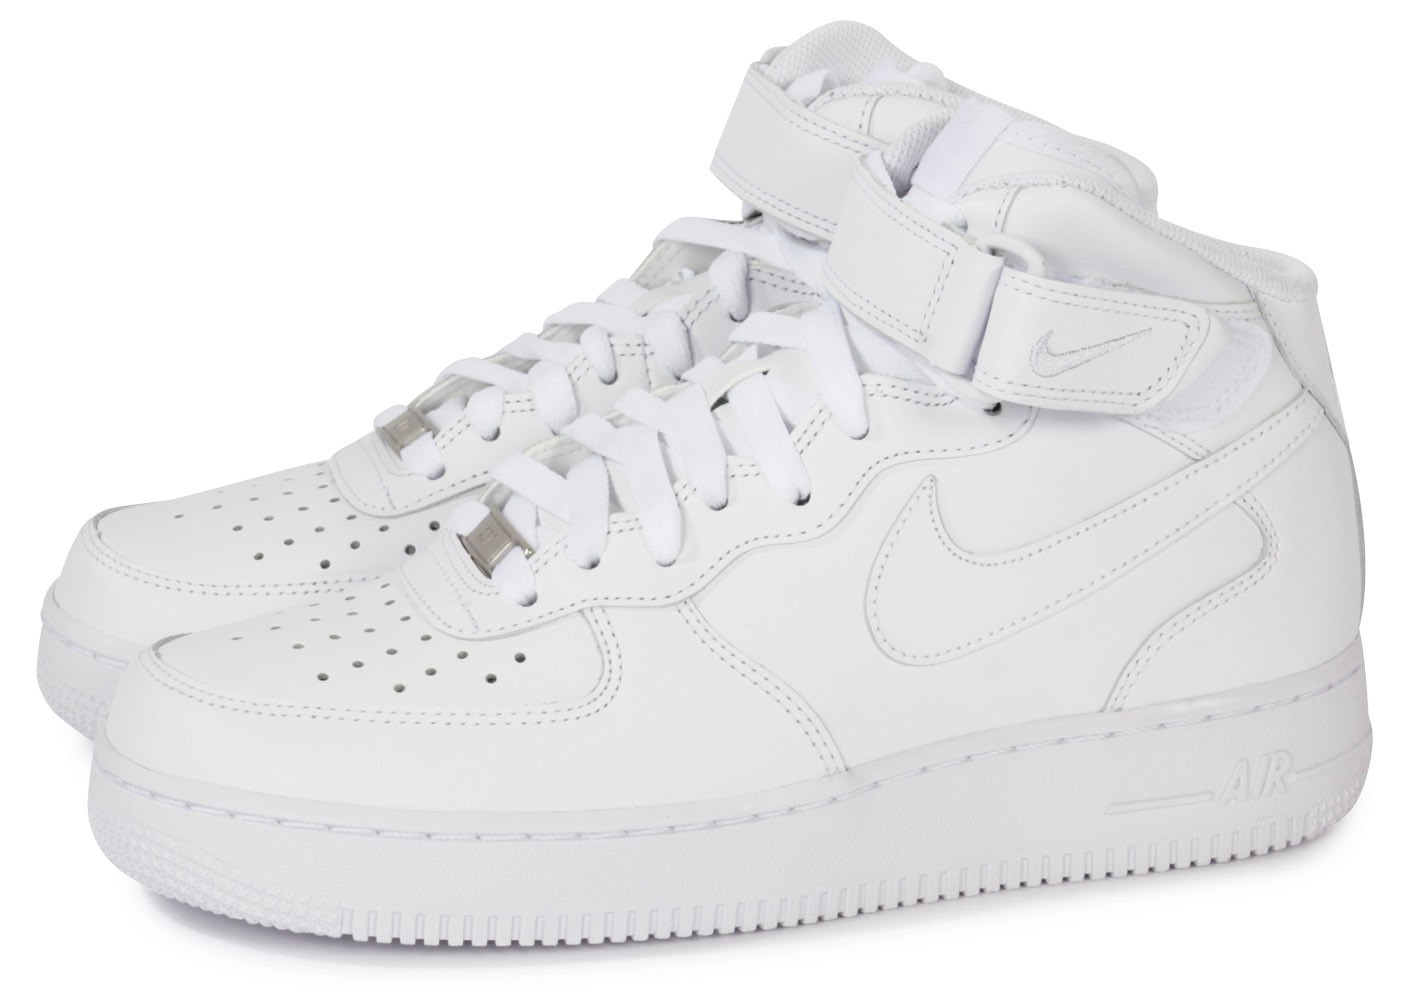 Nike Air Force 1 Mid 07 Blanche - Chaussures Baskets homme ...